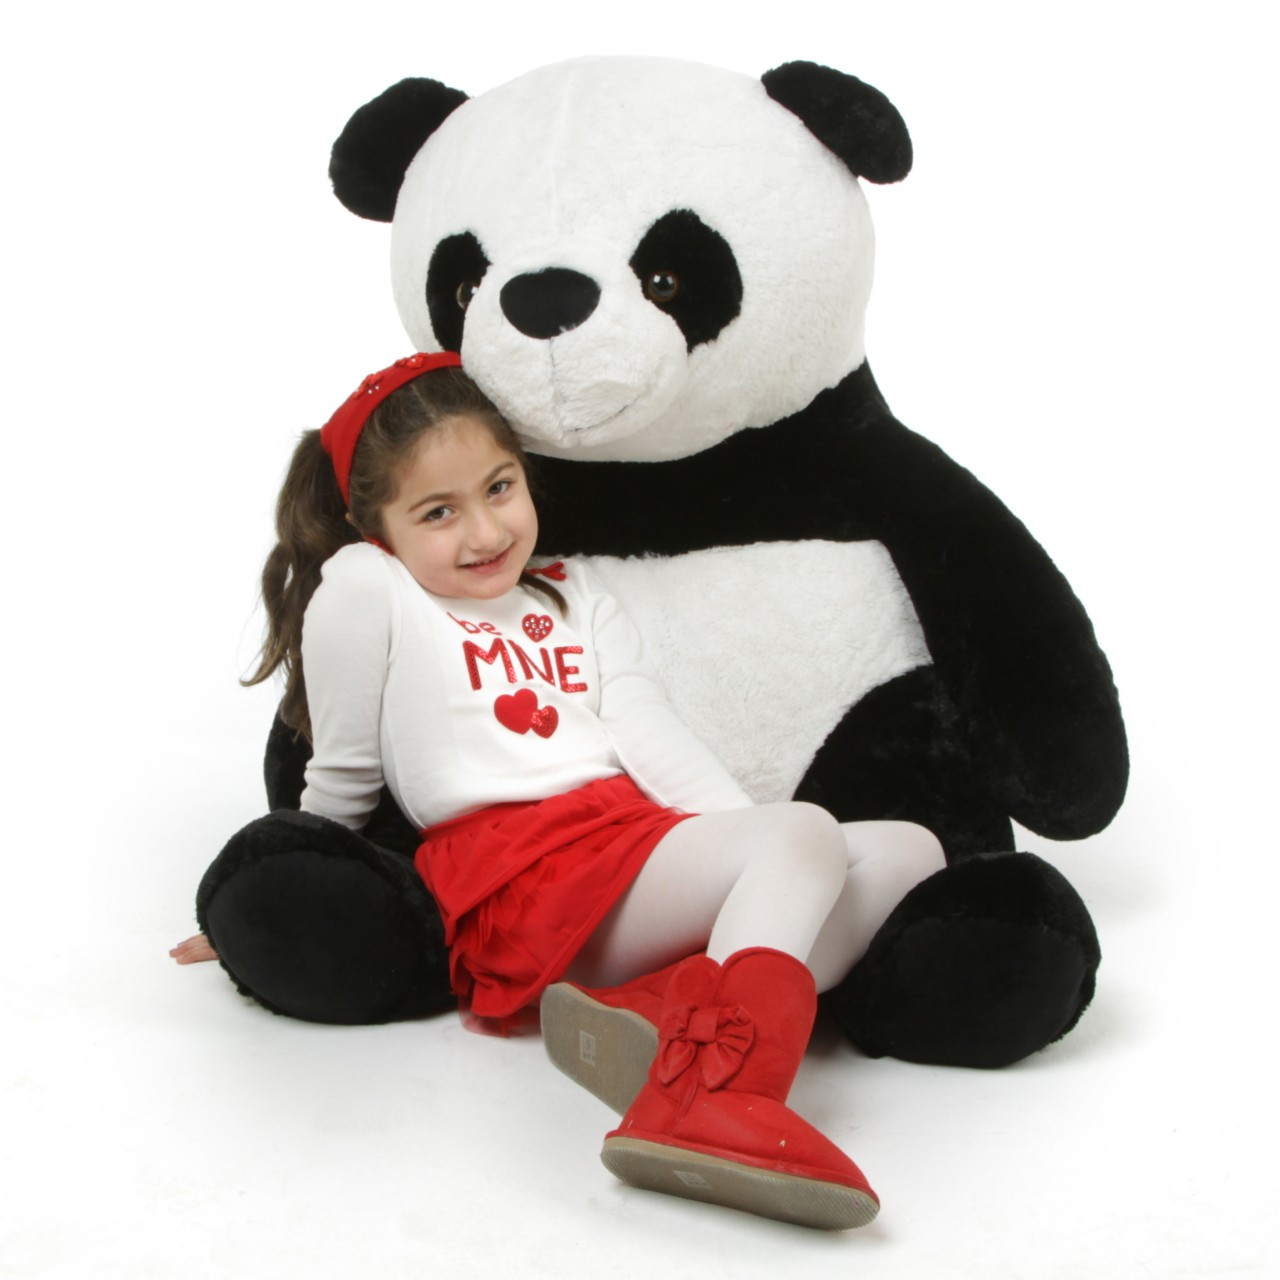 Papa Xin Giant Black And White Stuffed Panda Teddy Bear 42in